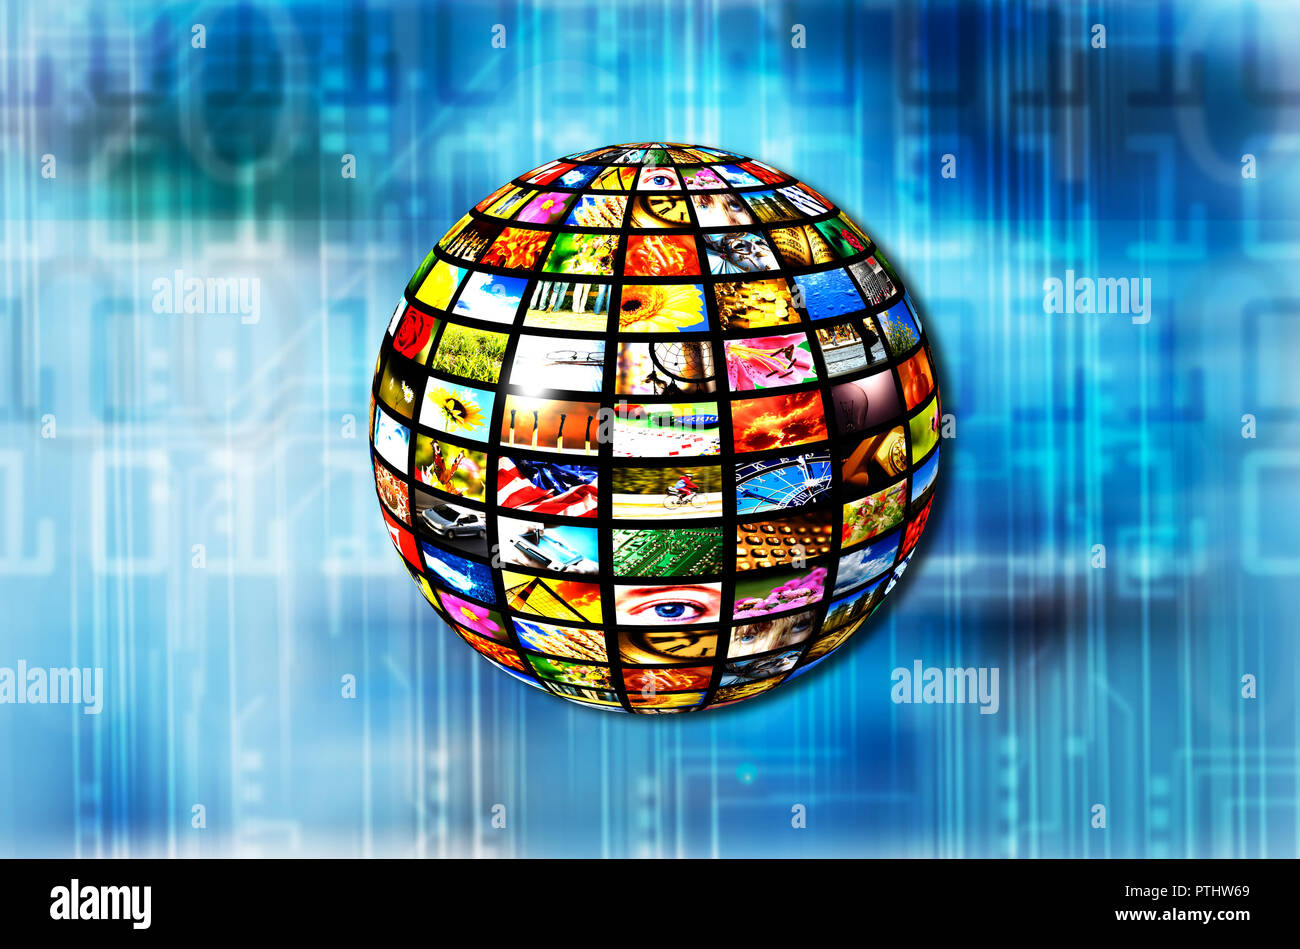 sphere with many screens, IPTV and digital broadcasting - Stock Image